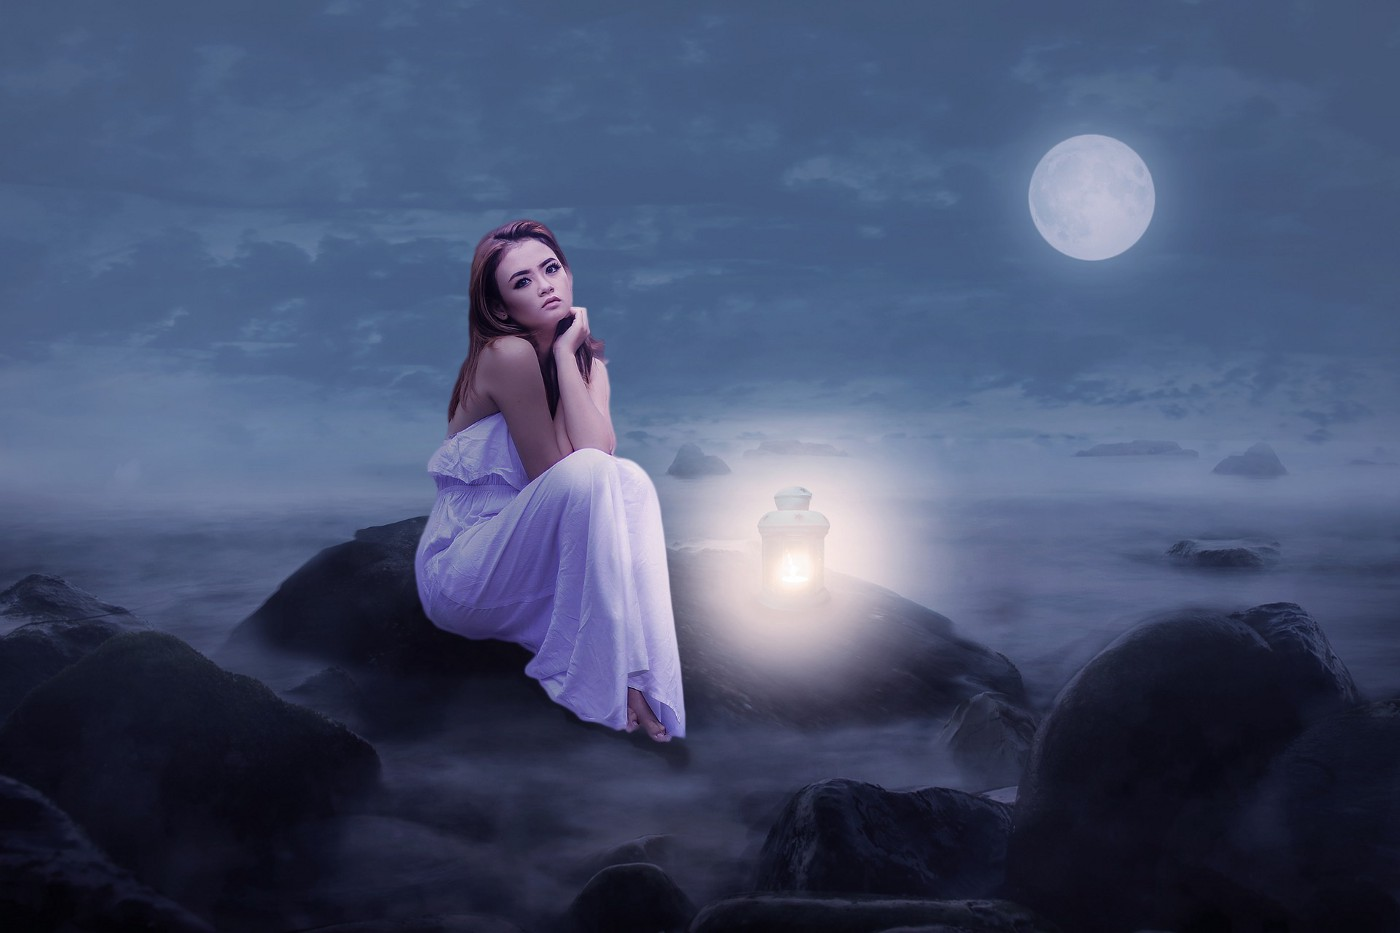 Woman in white gown sitting on the rock under the moonlight